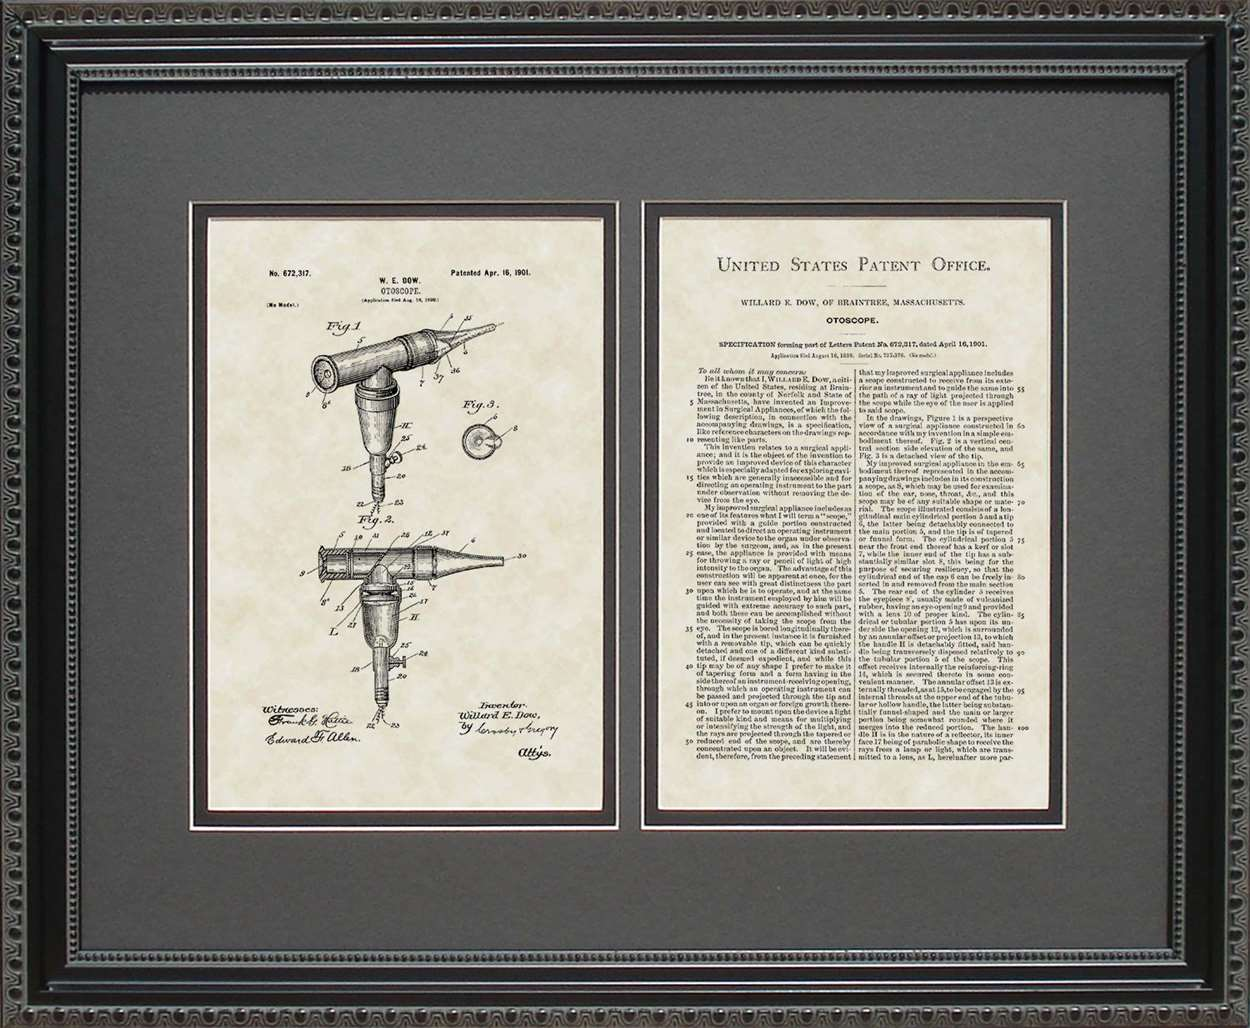 Otoscope Patent, Art & Copy, Dow, 1901, 16x20